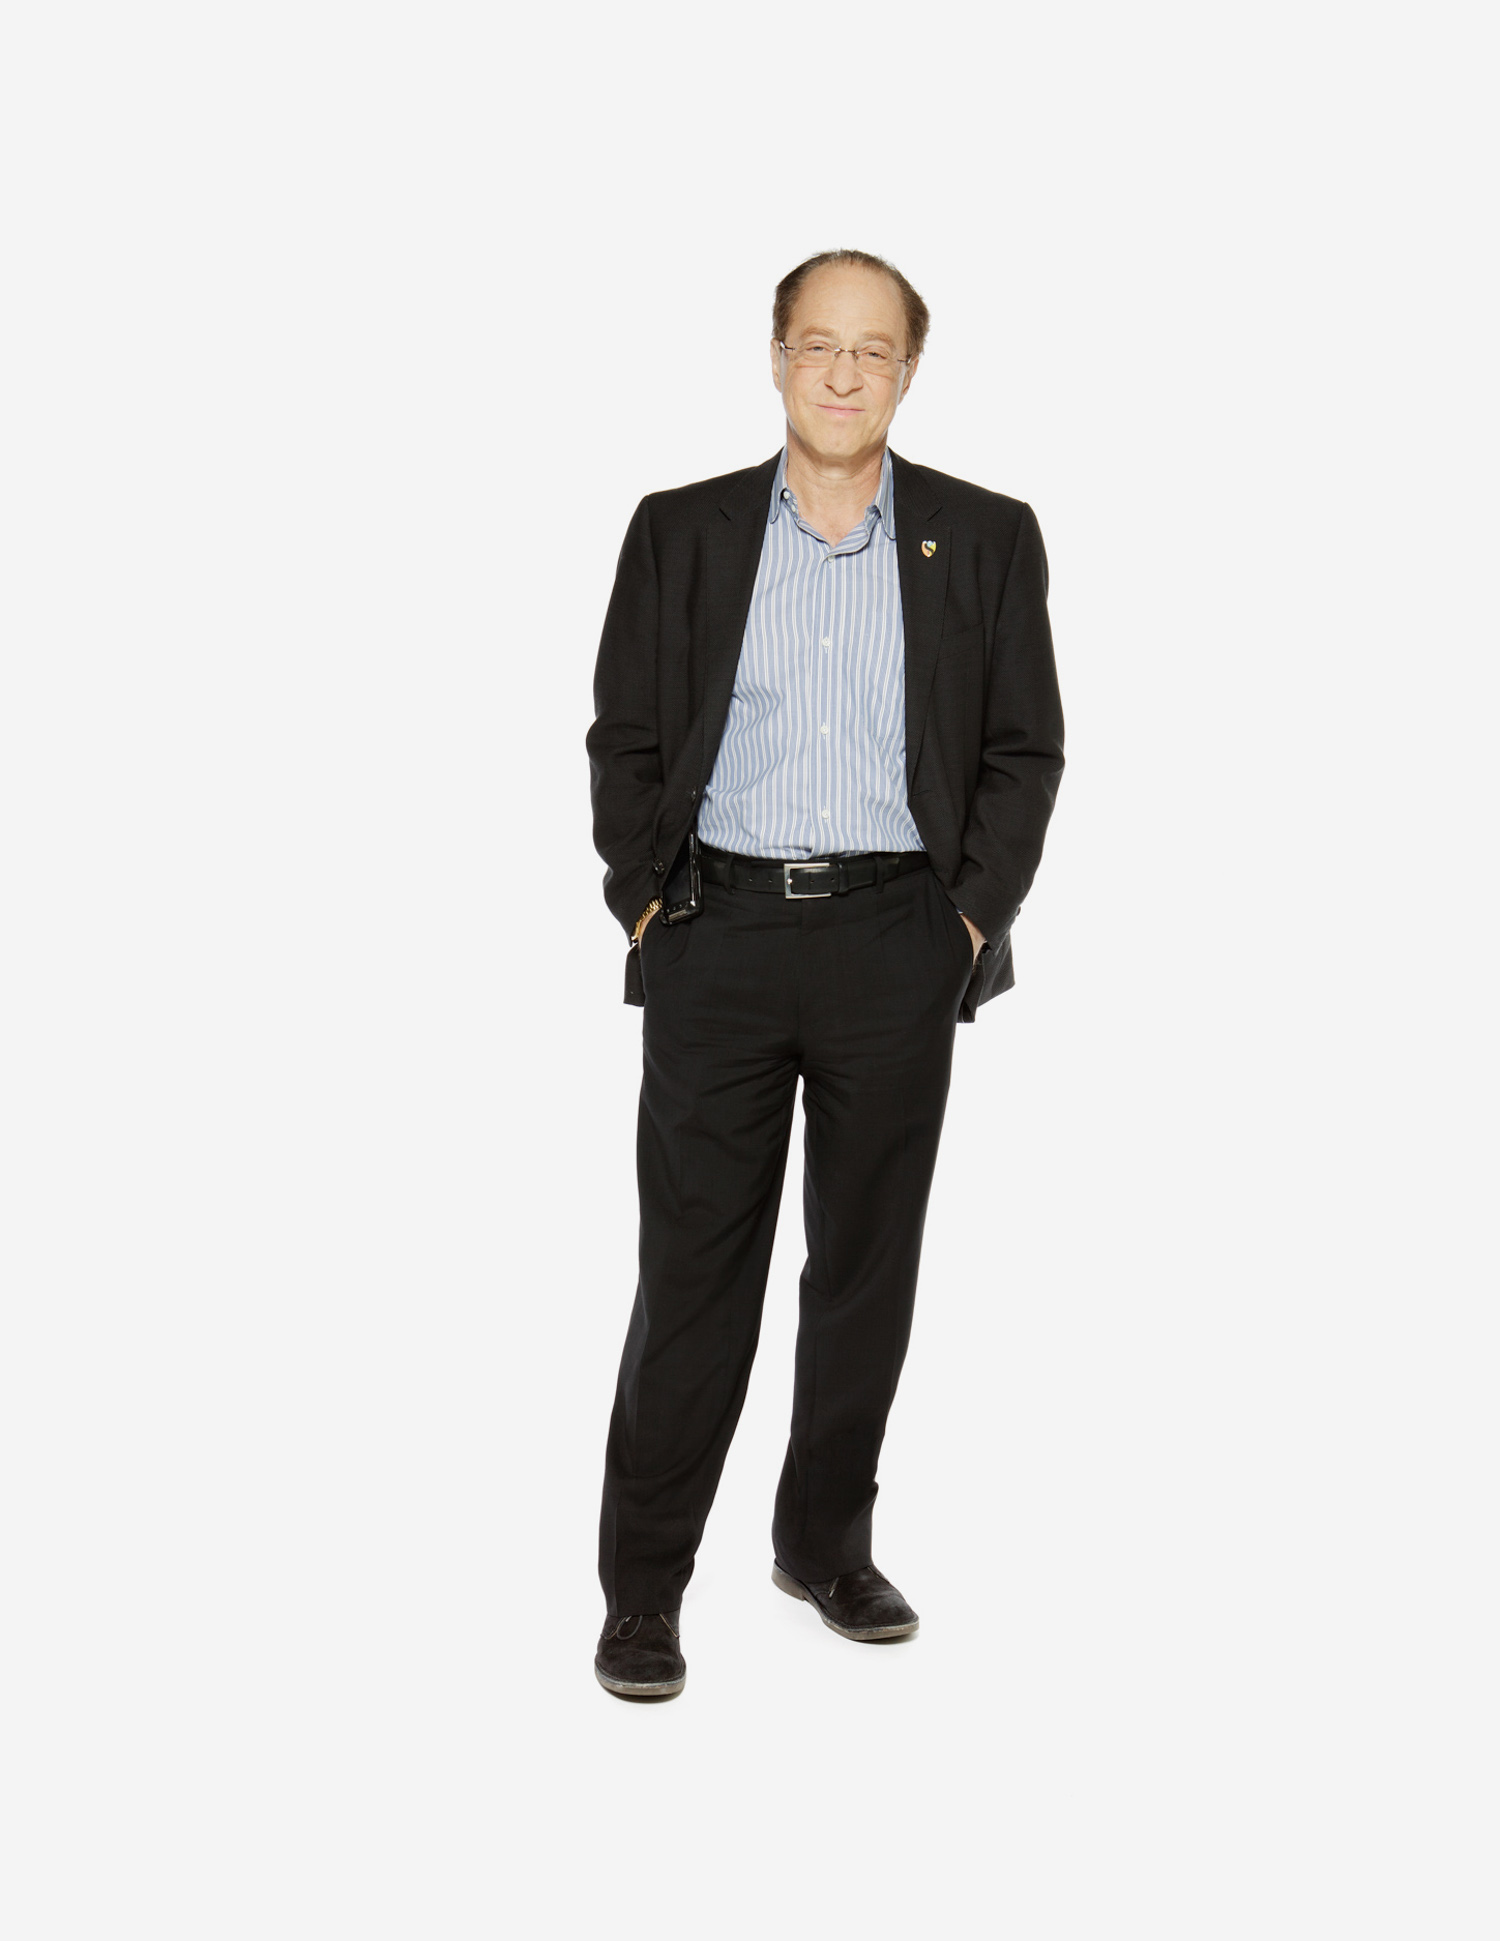 Ray Kurzweil photographed by Adam DeTour